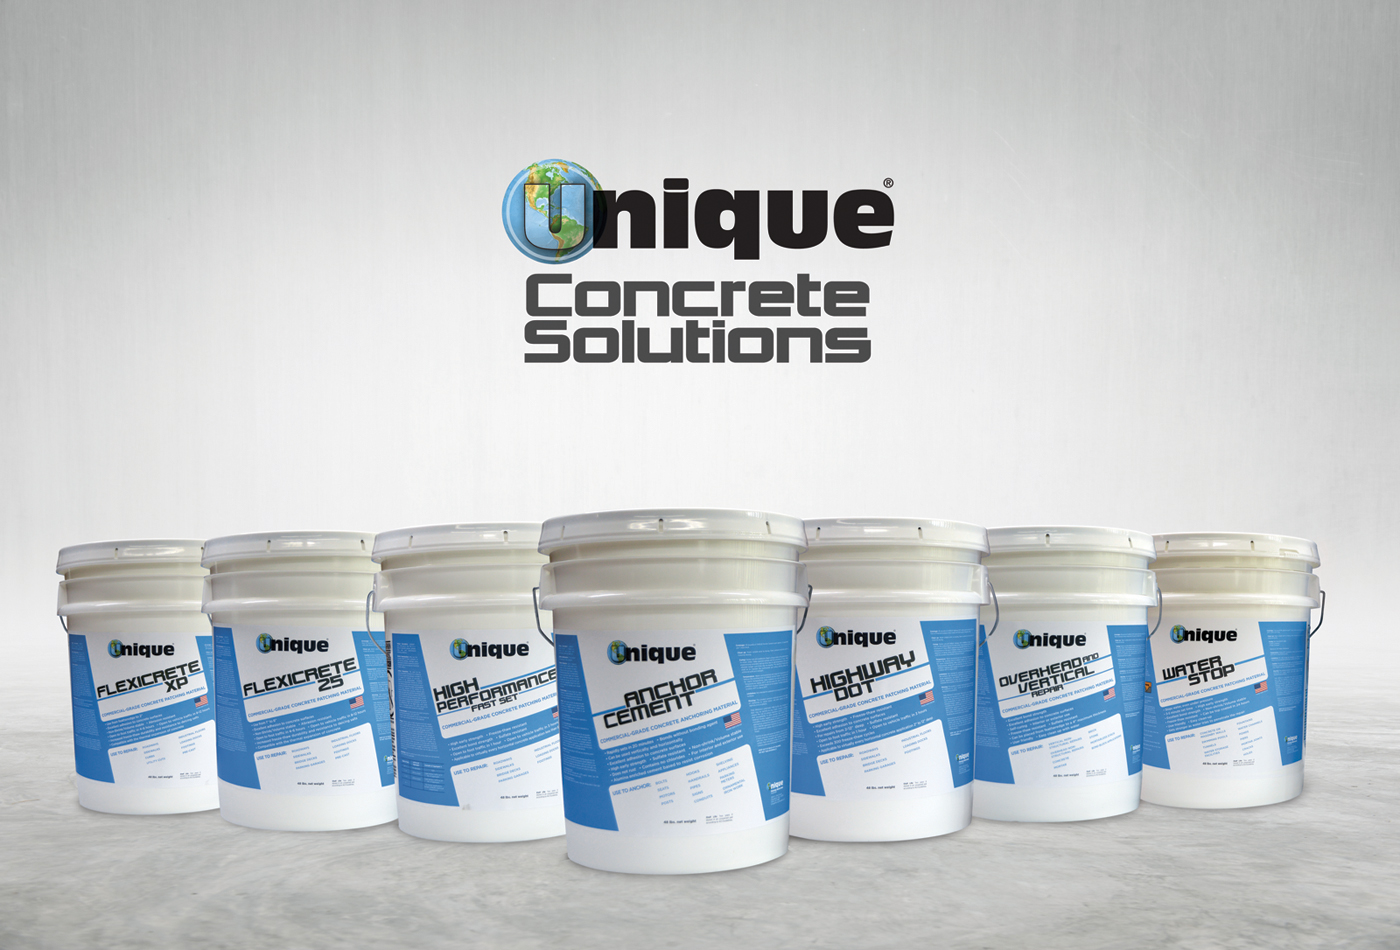 Unique Paving Materials Concrete Solutions product lineup.